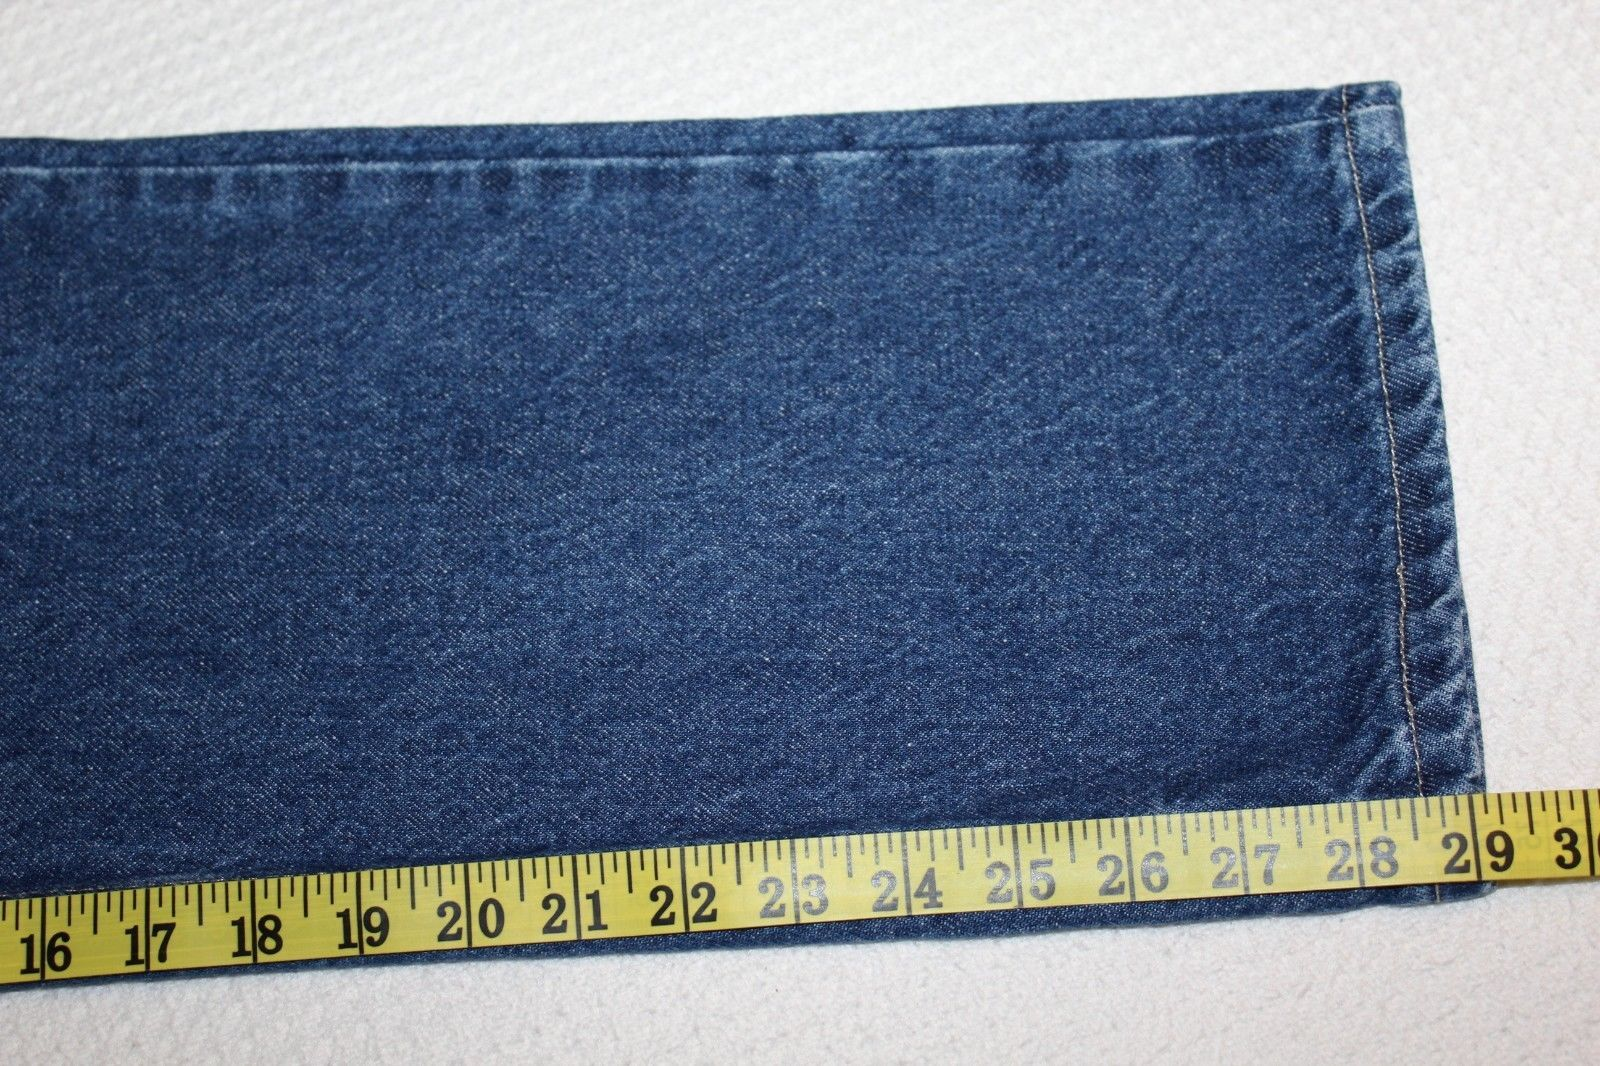 """LEE RIDERS Women's Size 14P Petite Relaxed Straight Leg Denim Jeans 29"""" Inseam"""